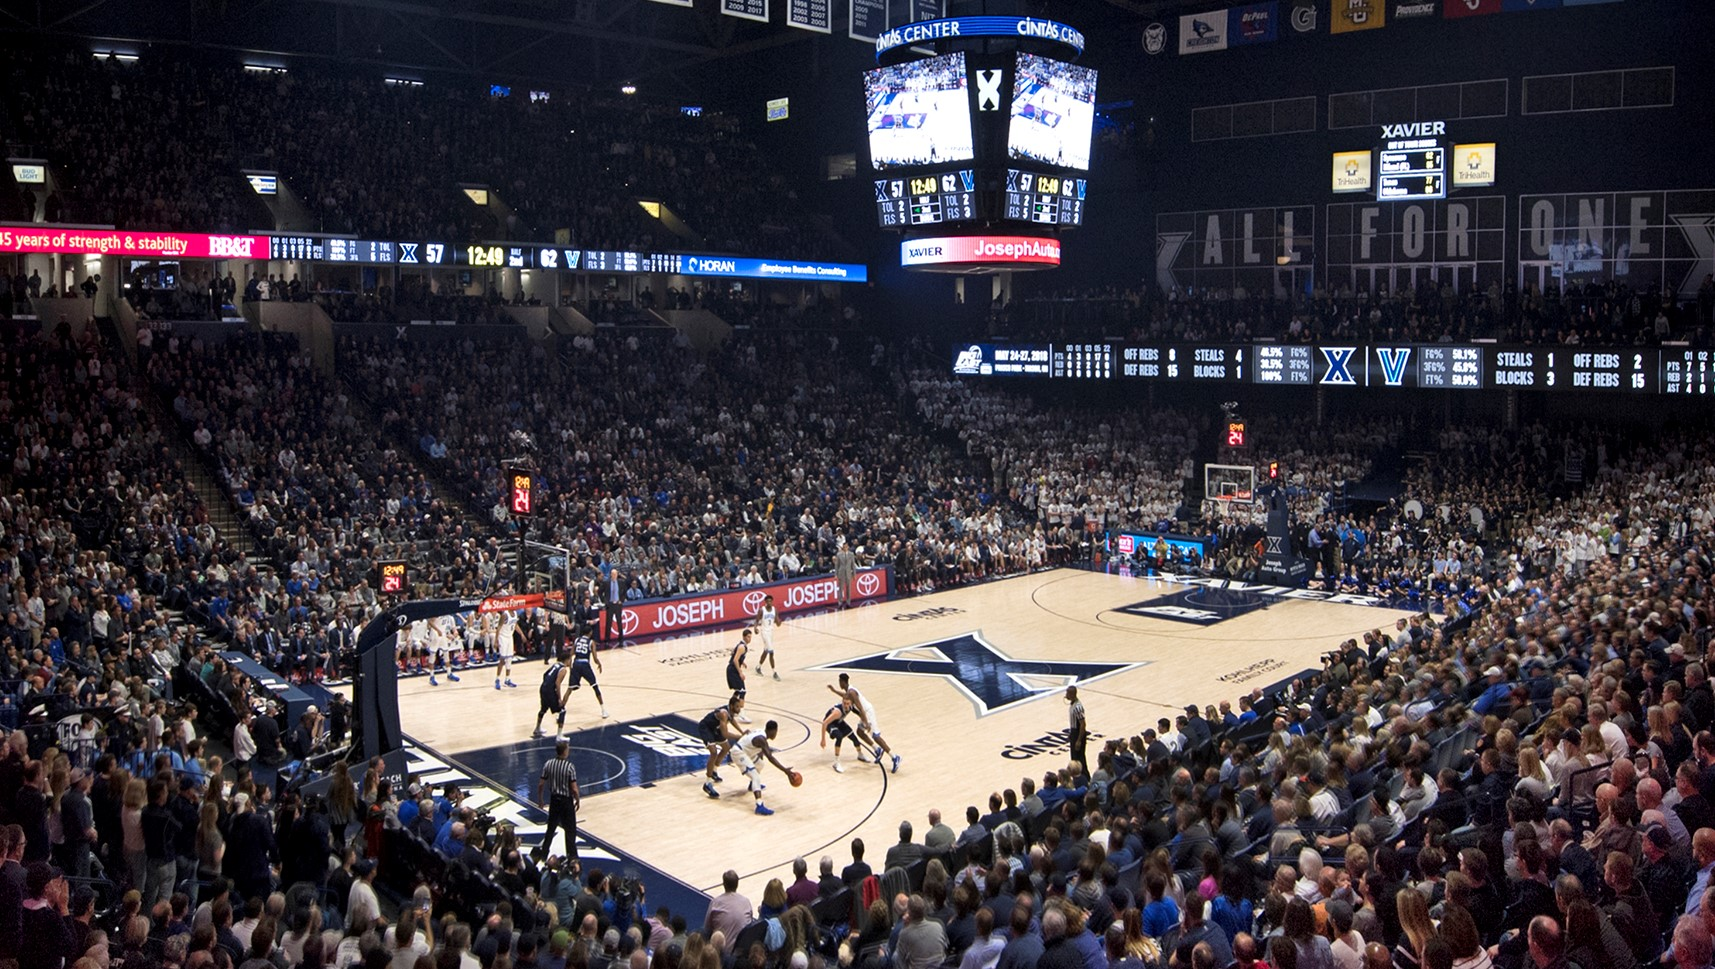 Men s Basketball Sets Season Ticket Sales Record - Xavier University ... cec3dfb89